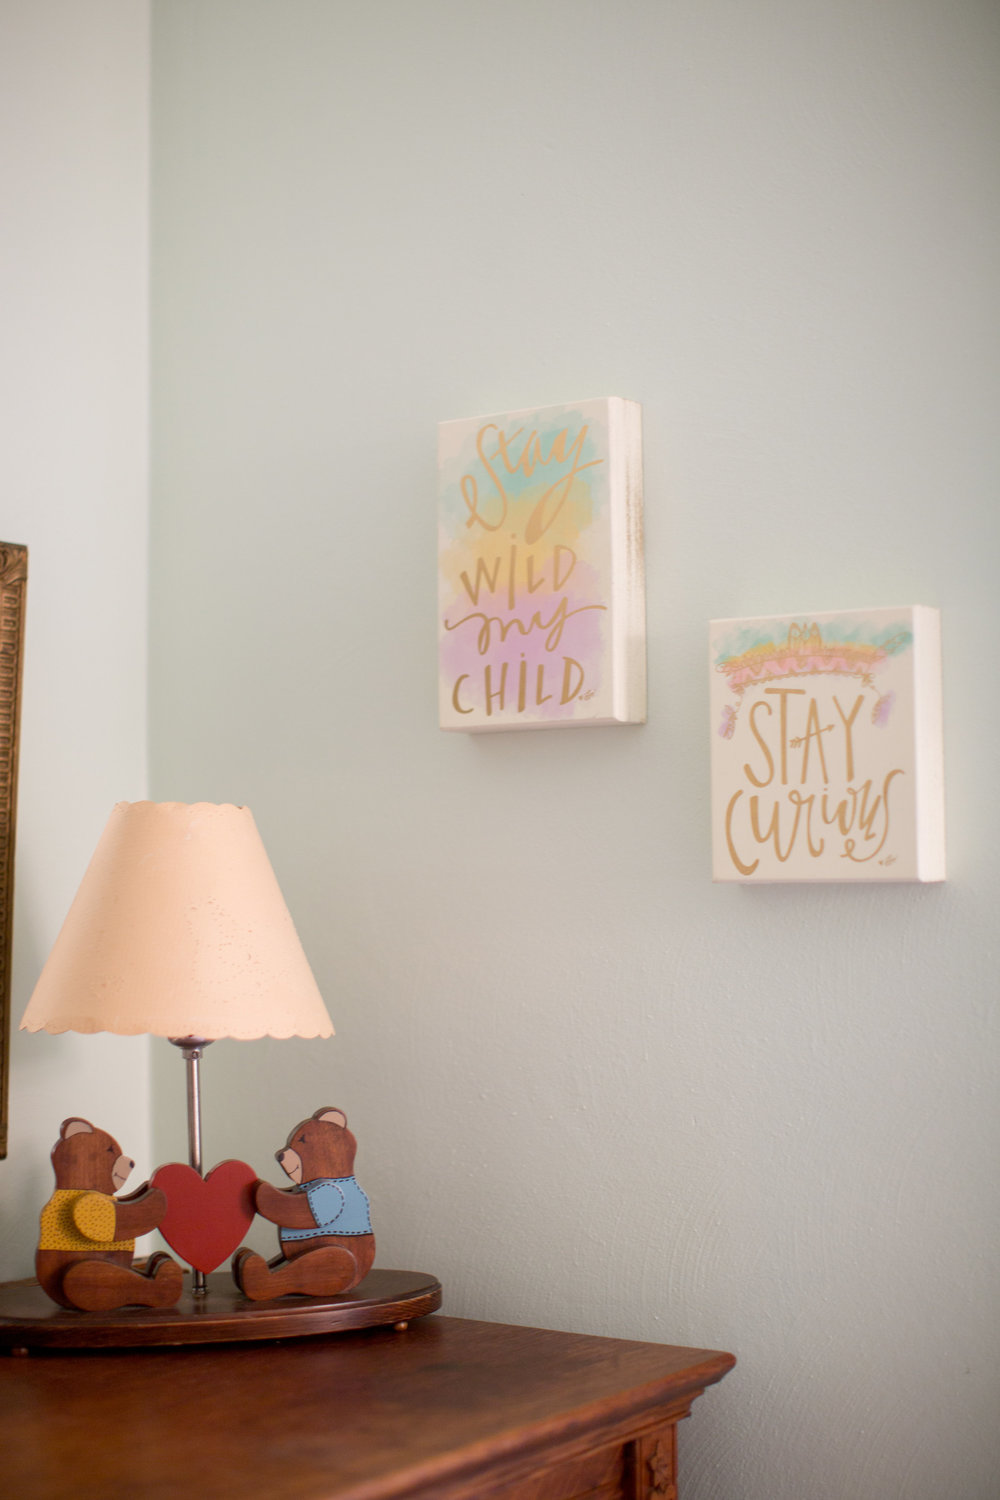 These cute little signs were from TJ Maxx. I have no clue what brand they are, but had to have them when I found them in the store. My momma insisted on getting them for us. The precious little bear lamp was made by Cal's grandpa. It was in his nursery when he was little. Since we got married, I promised him we'd always hang onto it.